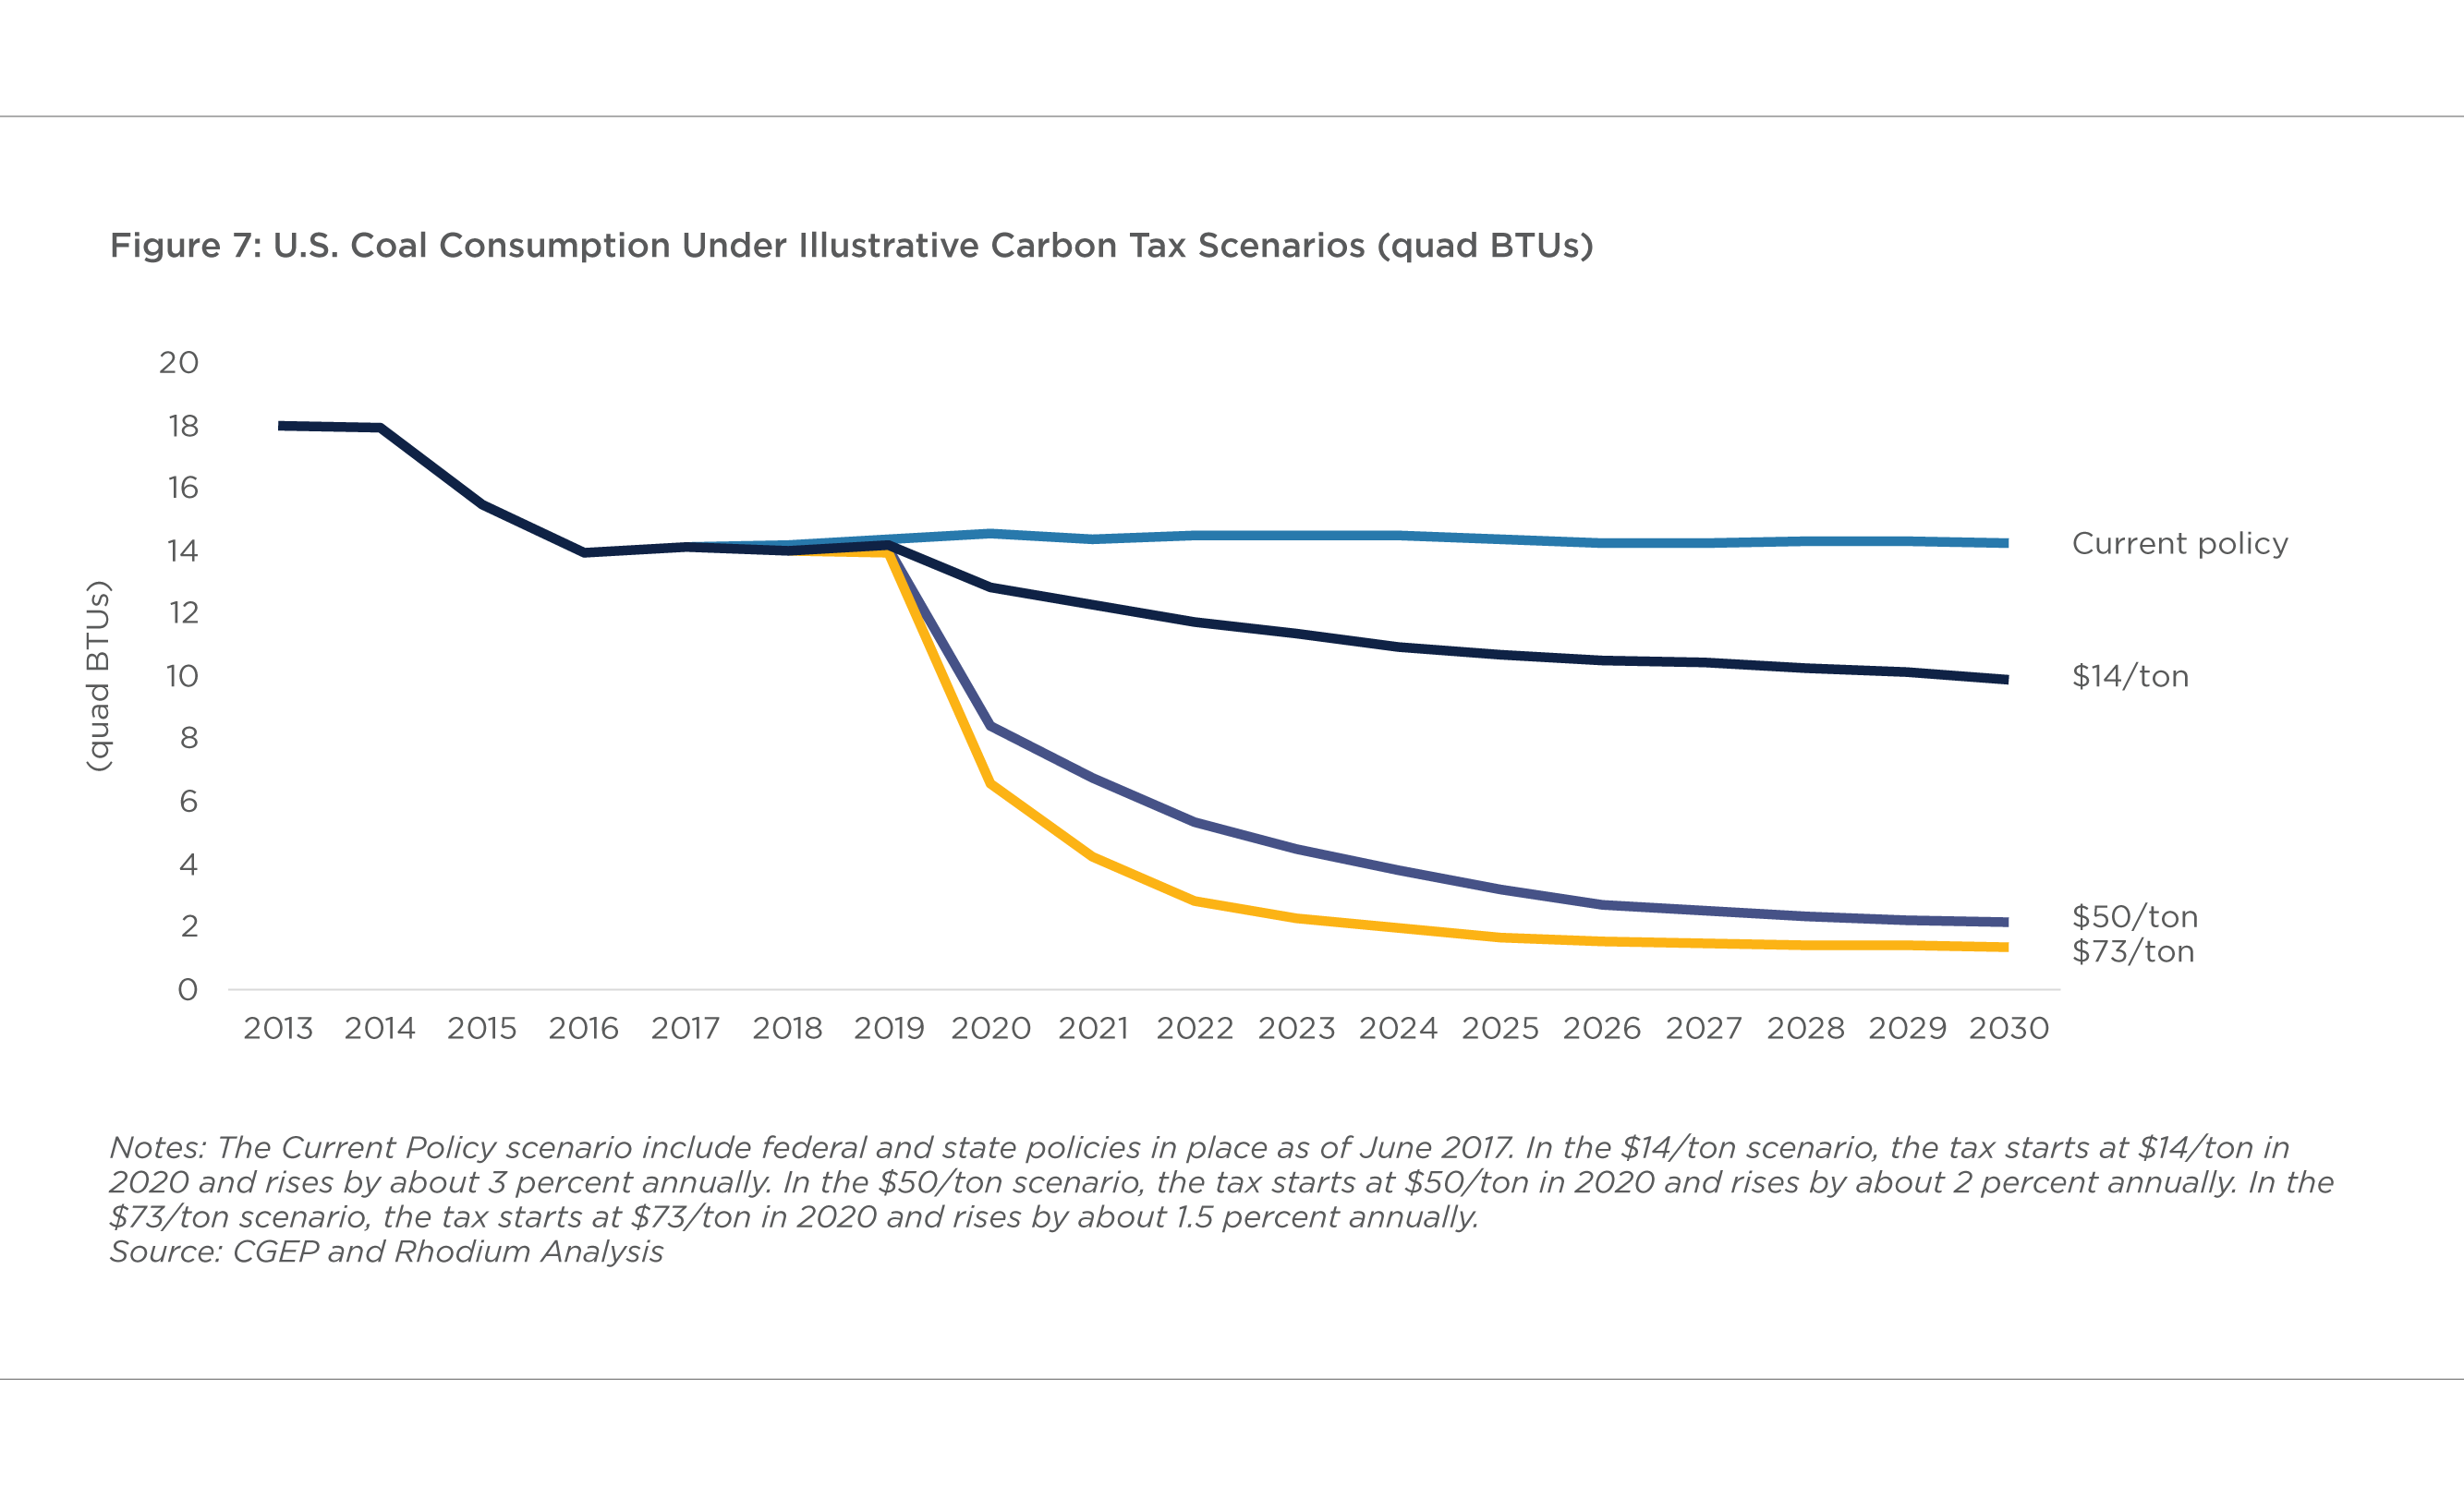 FIGURE 7: U.S. COAL CONSUMPTION UNDER ILLUSTRATIVE CARBON TAX SCENARIOS (QUAD BTUS)